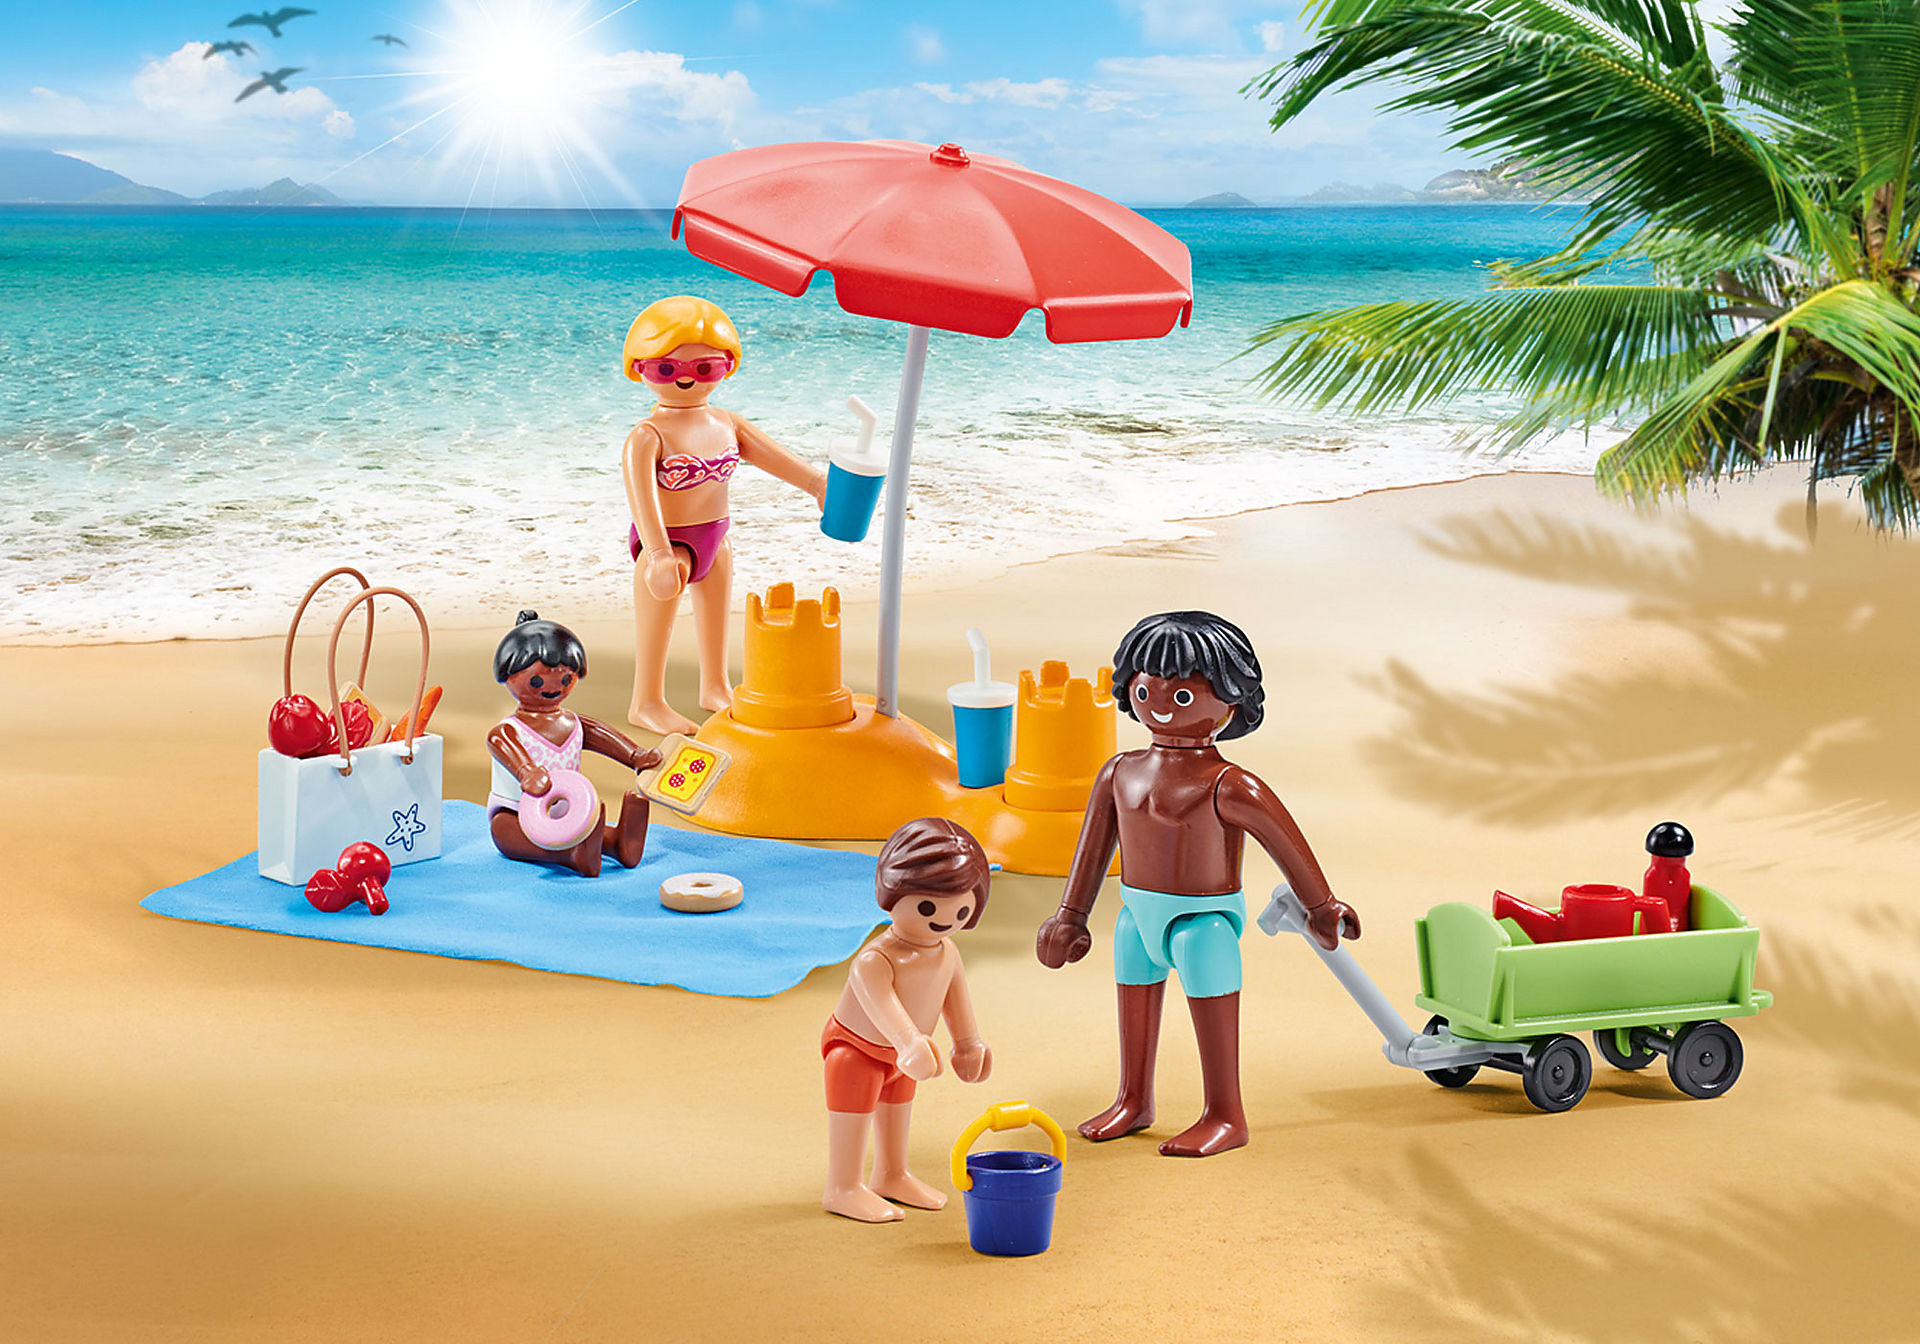 http://media.playmobil.com/i/playmobil/9819_product_detail/Famiglia in spiaggia